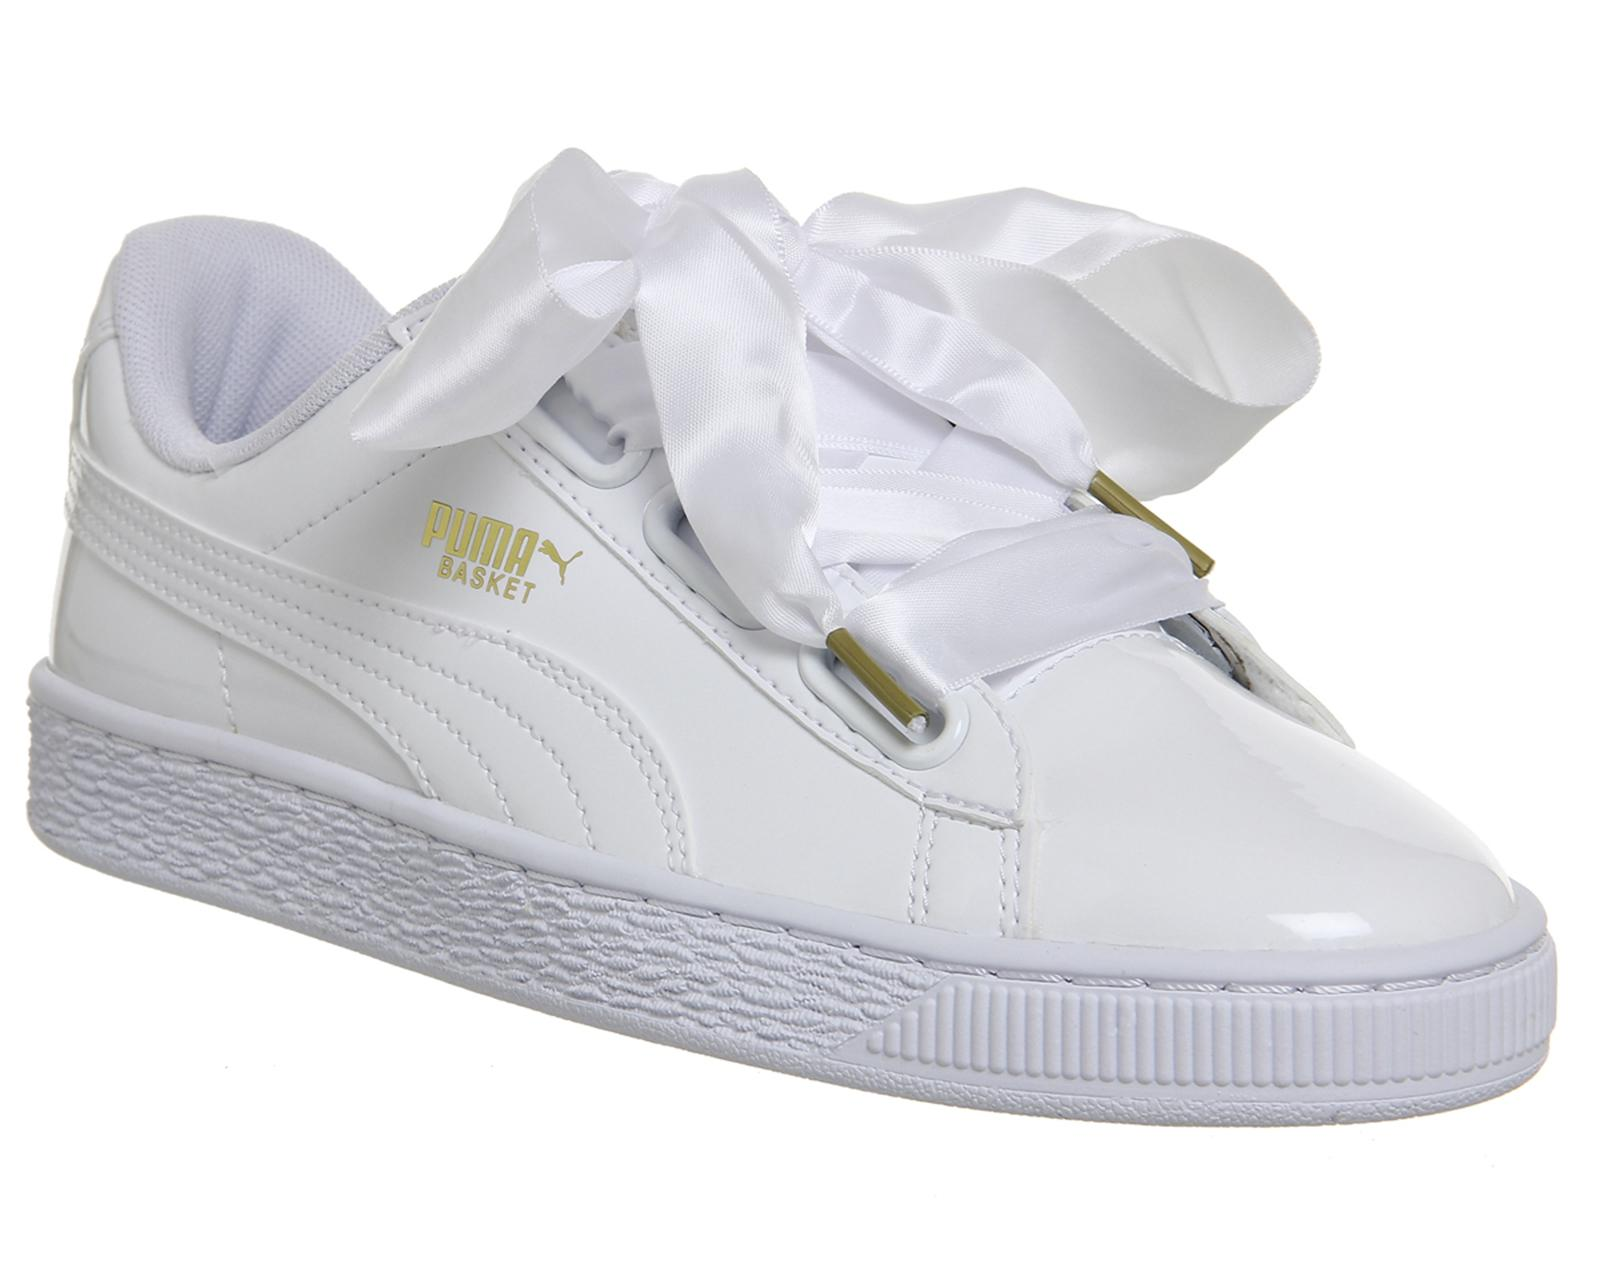 0b7bf1d6613 Lyst - PUMA Basket Heart Trainers in White